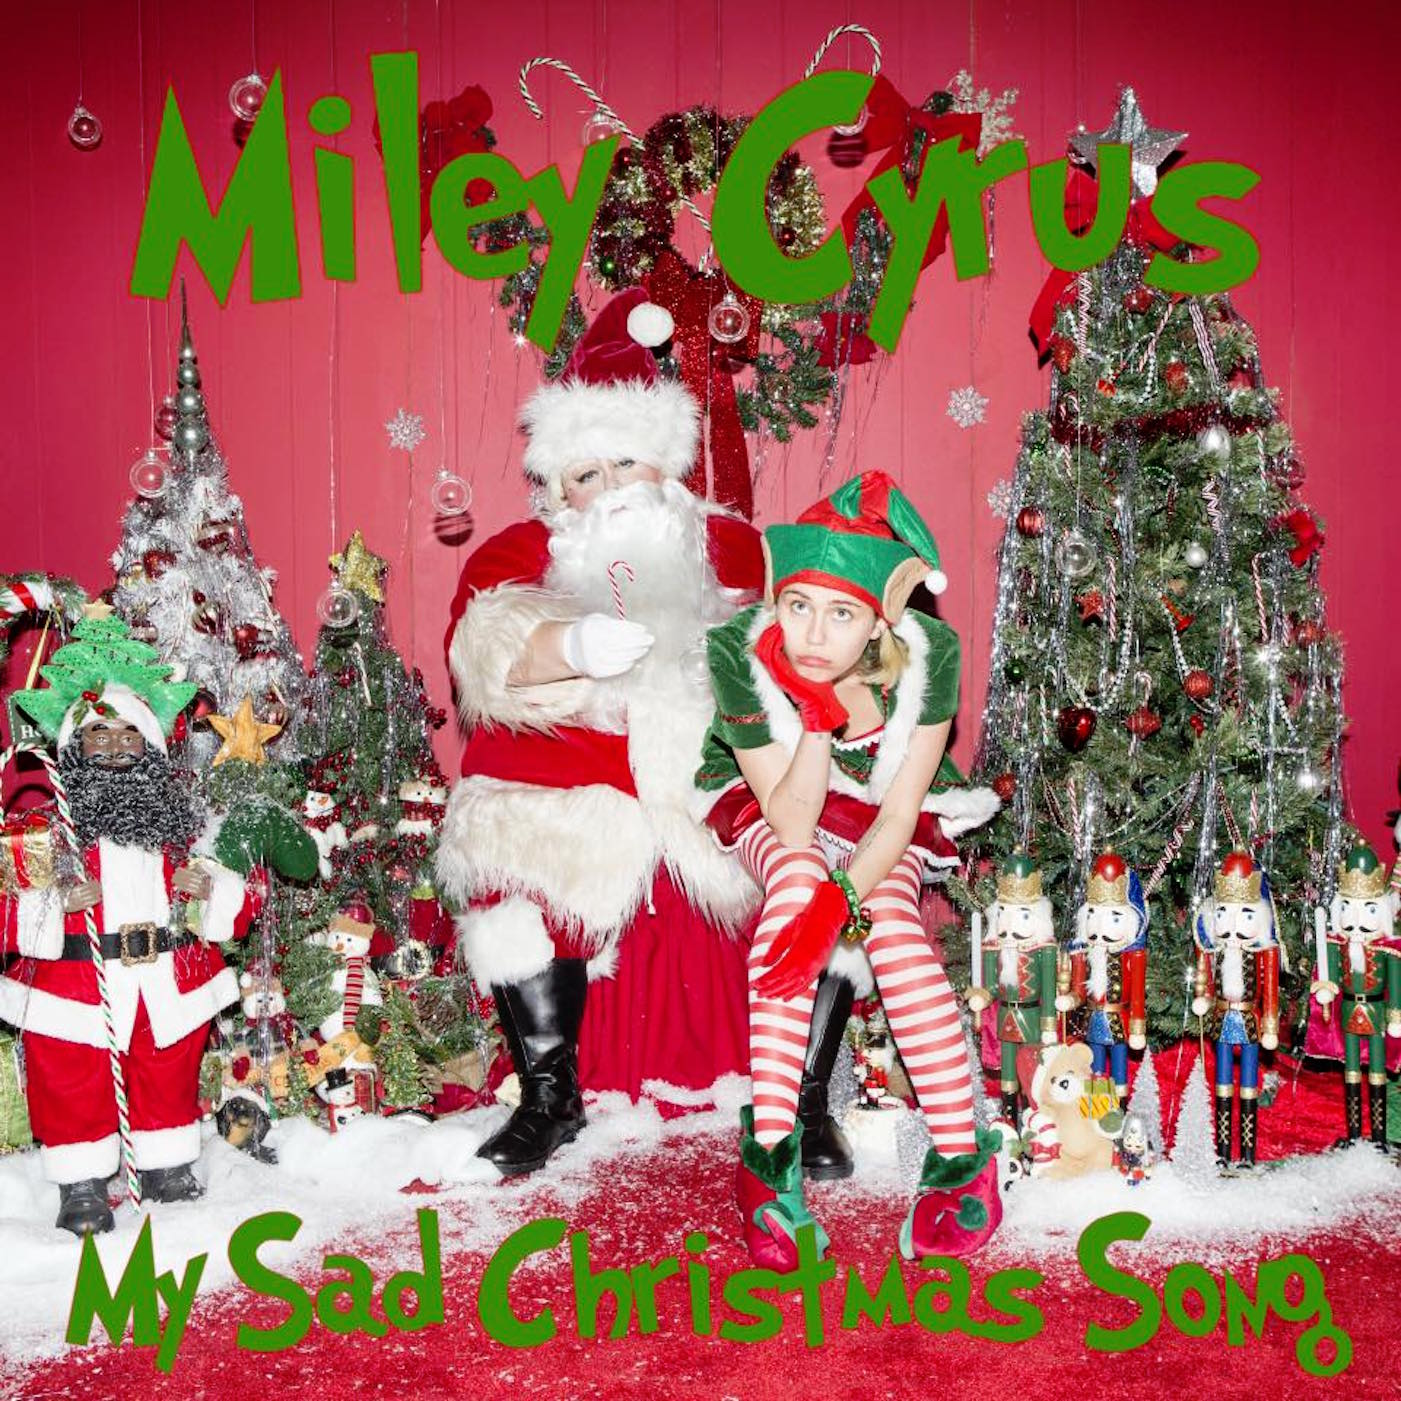 Hear Miley Cyrus and Flaming Lips' Moody 'My Sad Christmas Song' - Rolling Stone